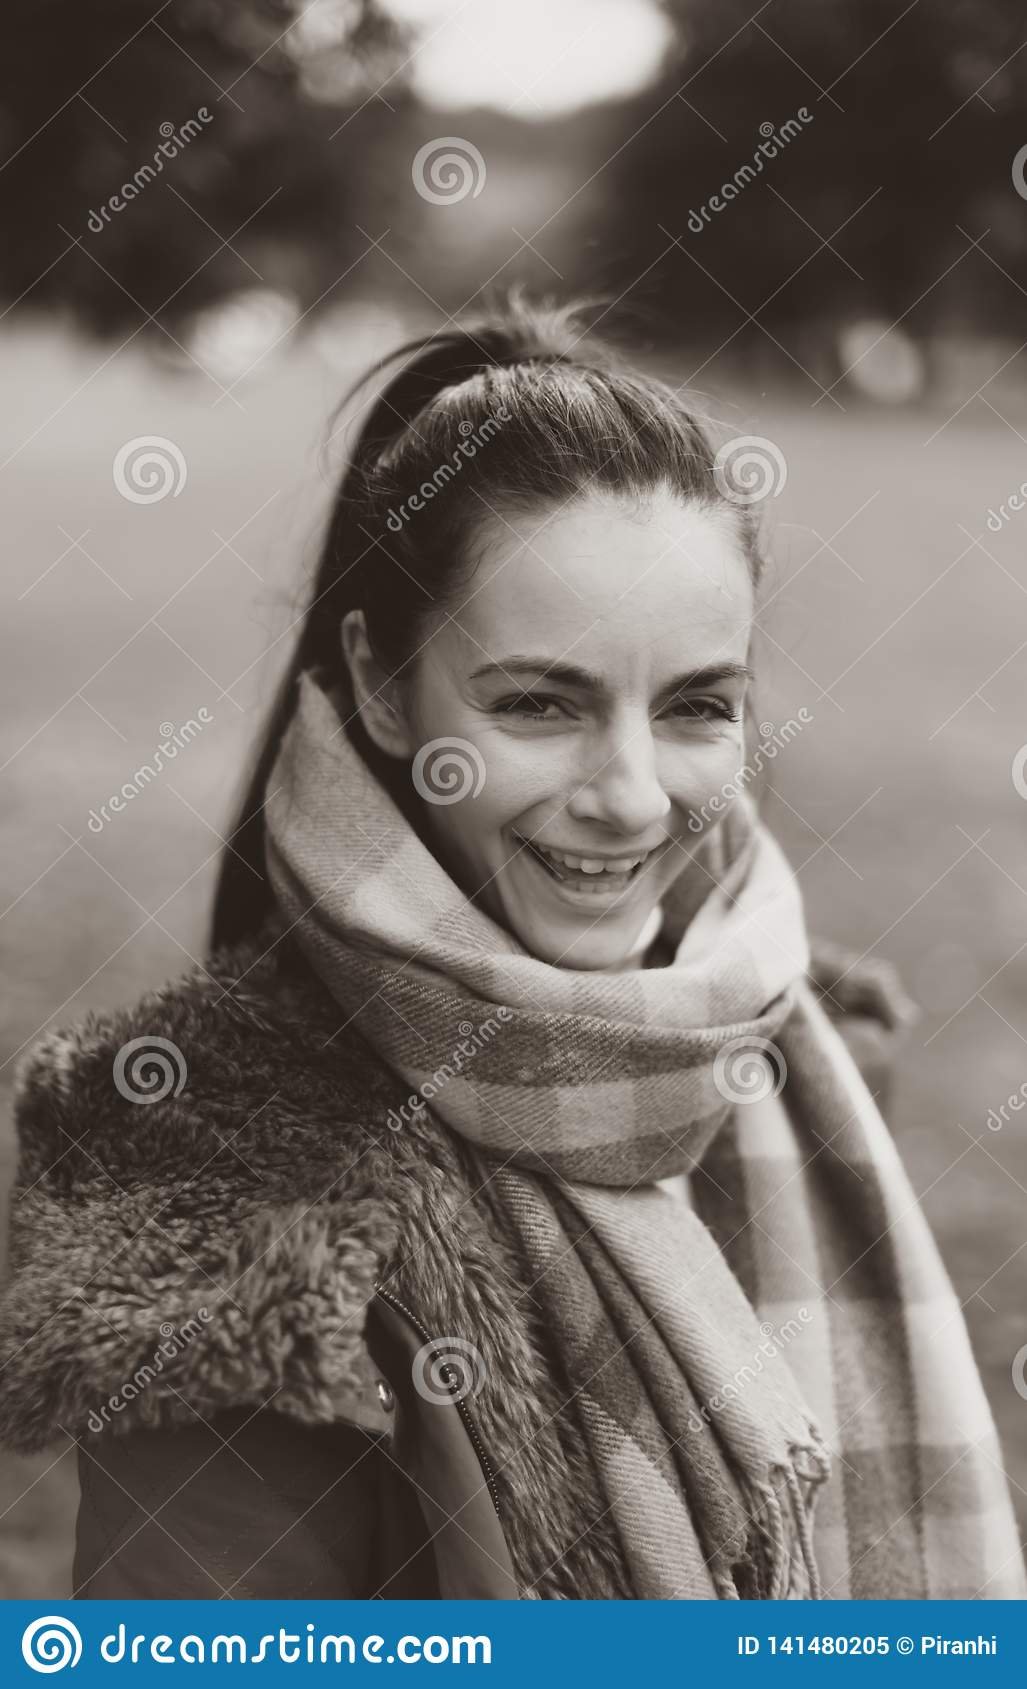 A young female caucasian woman laughing at the camera